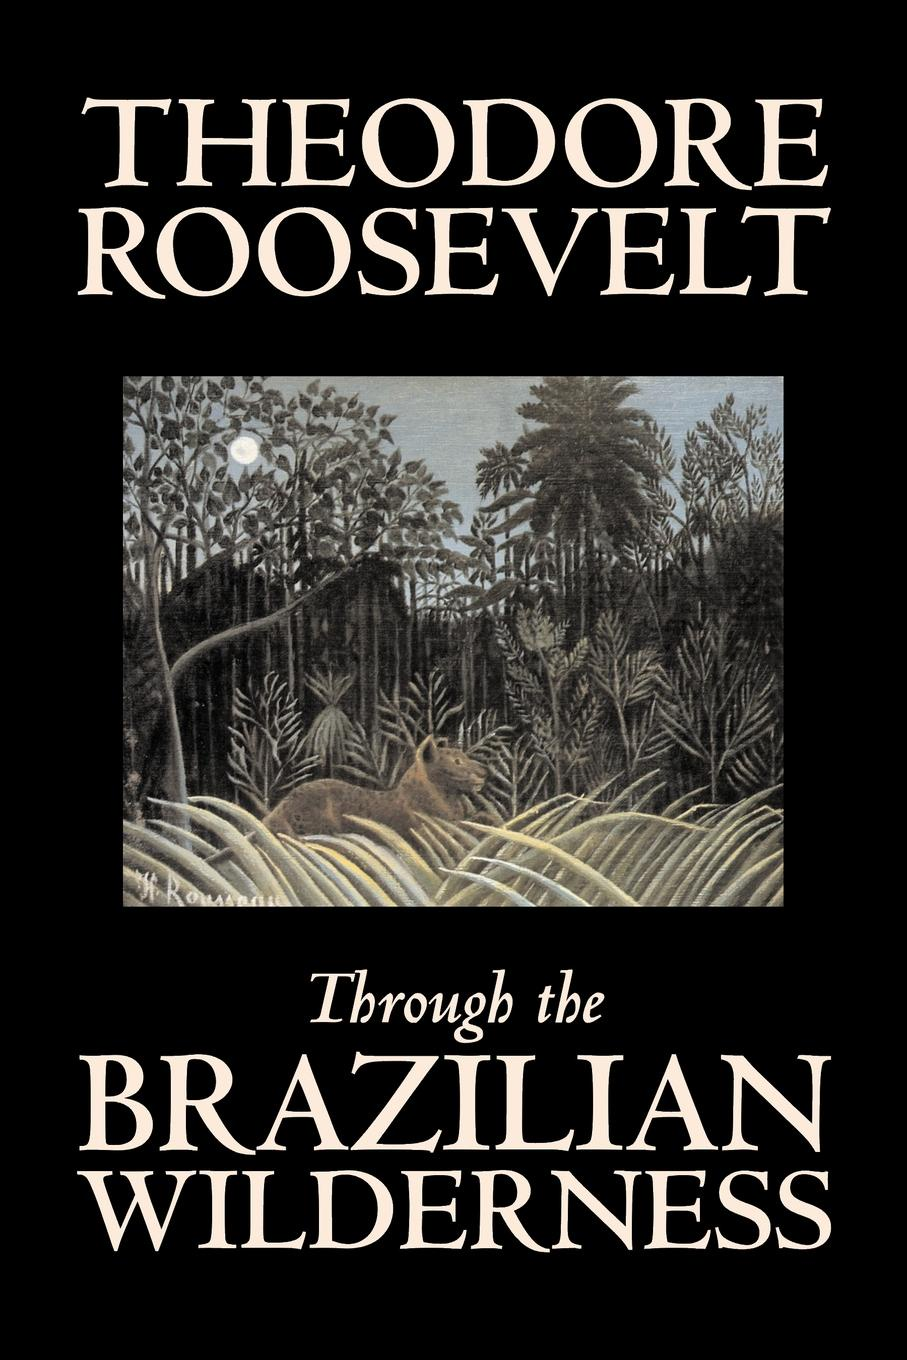 Theodore Roosevelt Through the Brazilian Wilderness by Theodore Roosevelt, Travel, Special Interest, Adventure, Essays & Travelogues my brother theodore roosevelt